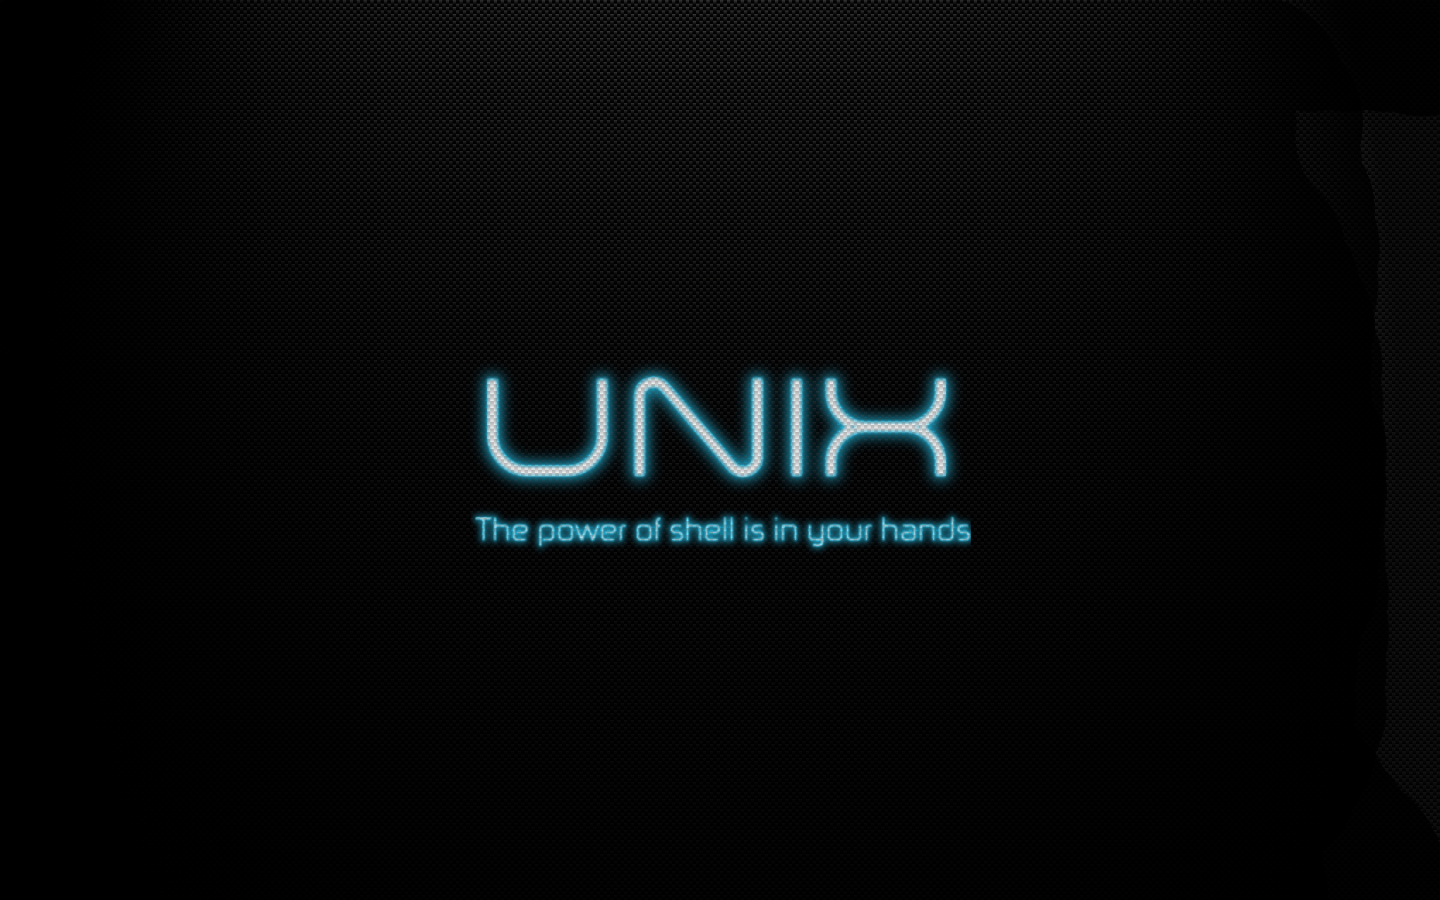 Latest Unix Wallpapers ~ Wallpapers, Pictures, Fashion, Mobile ...